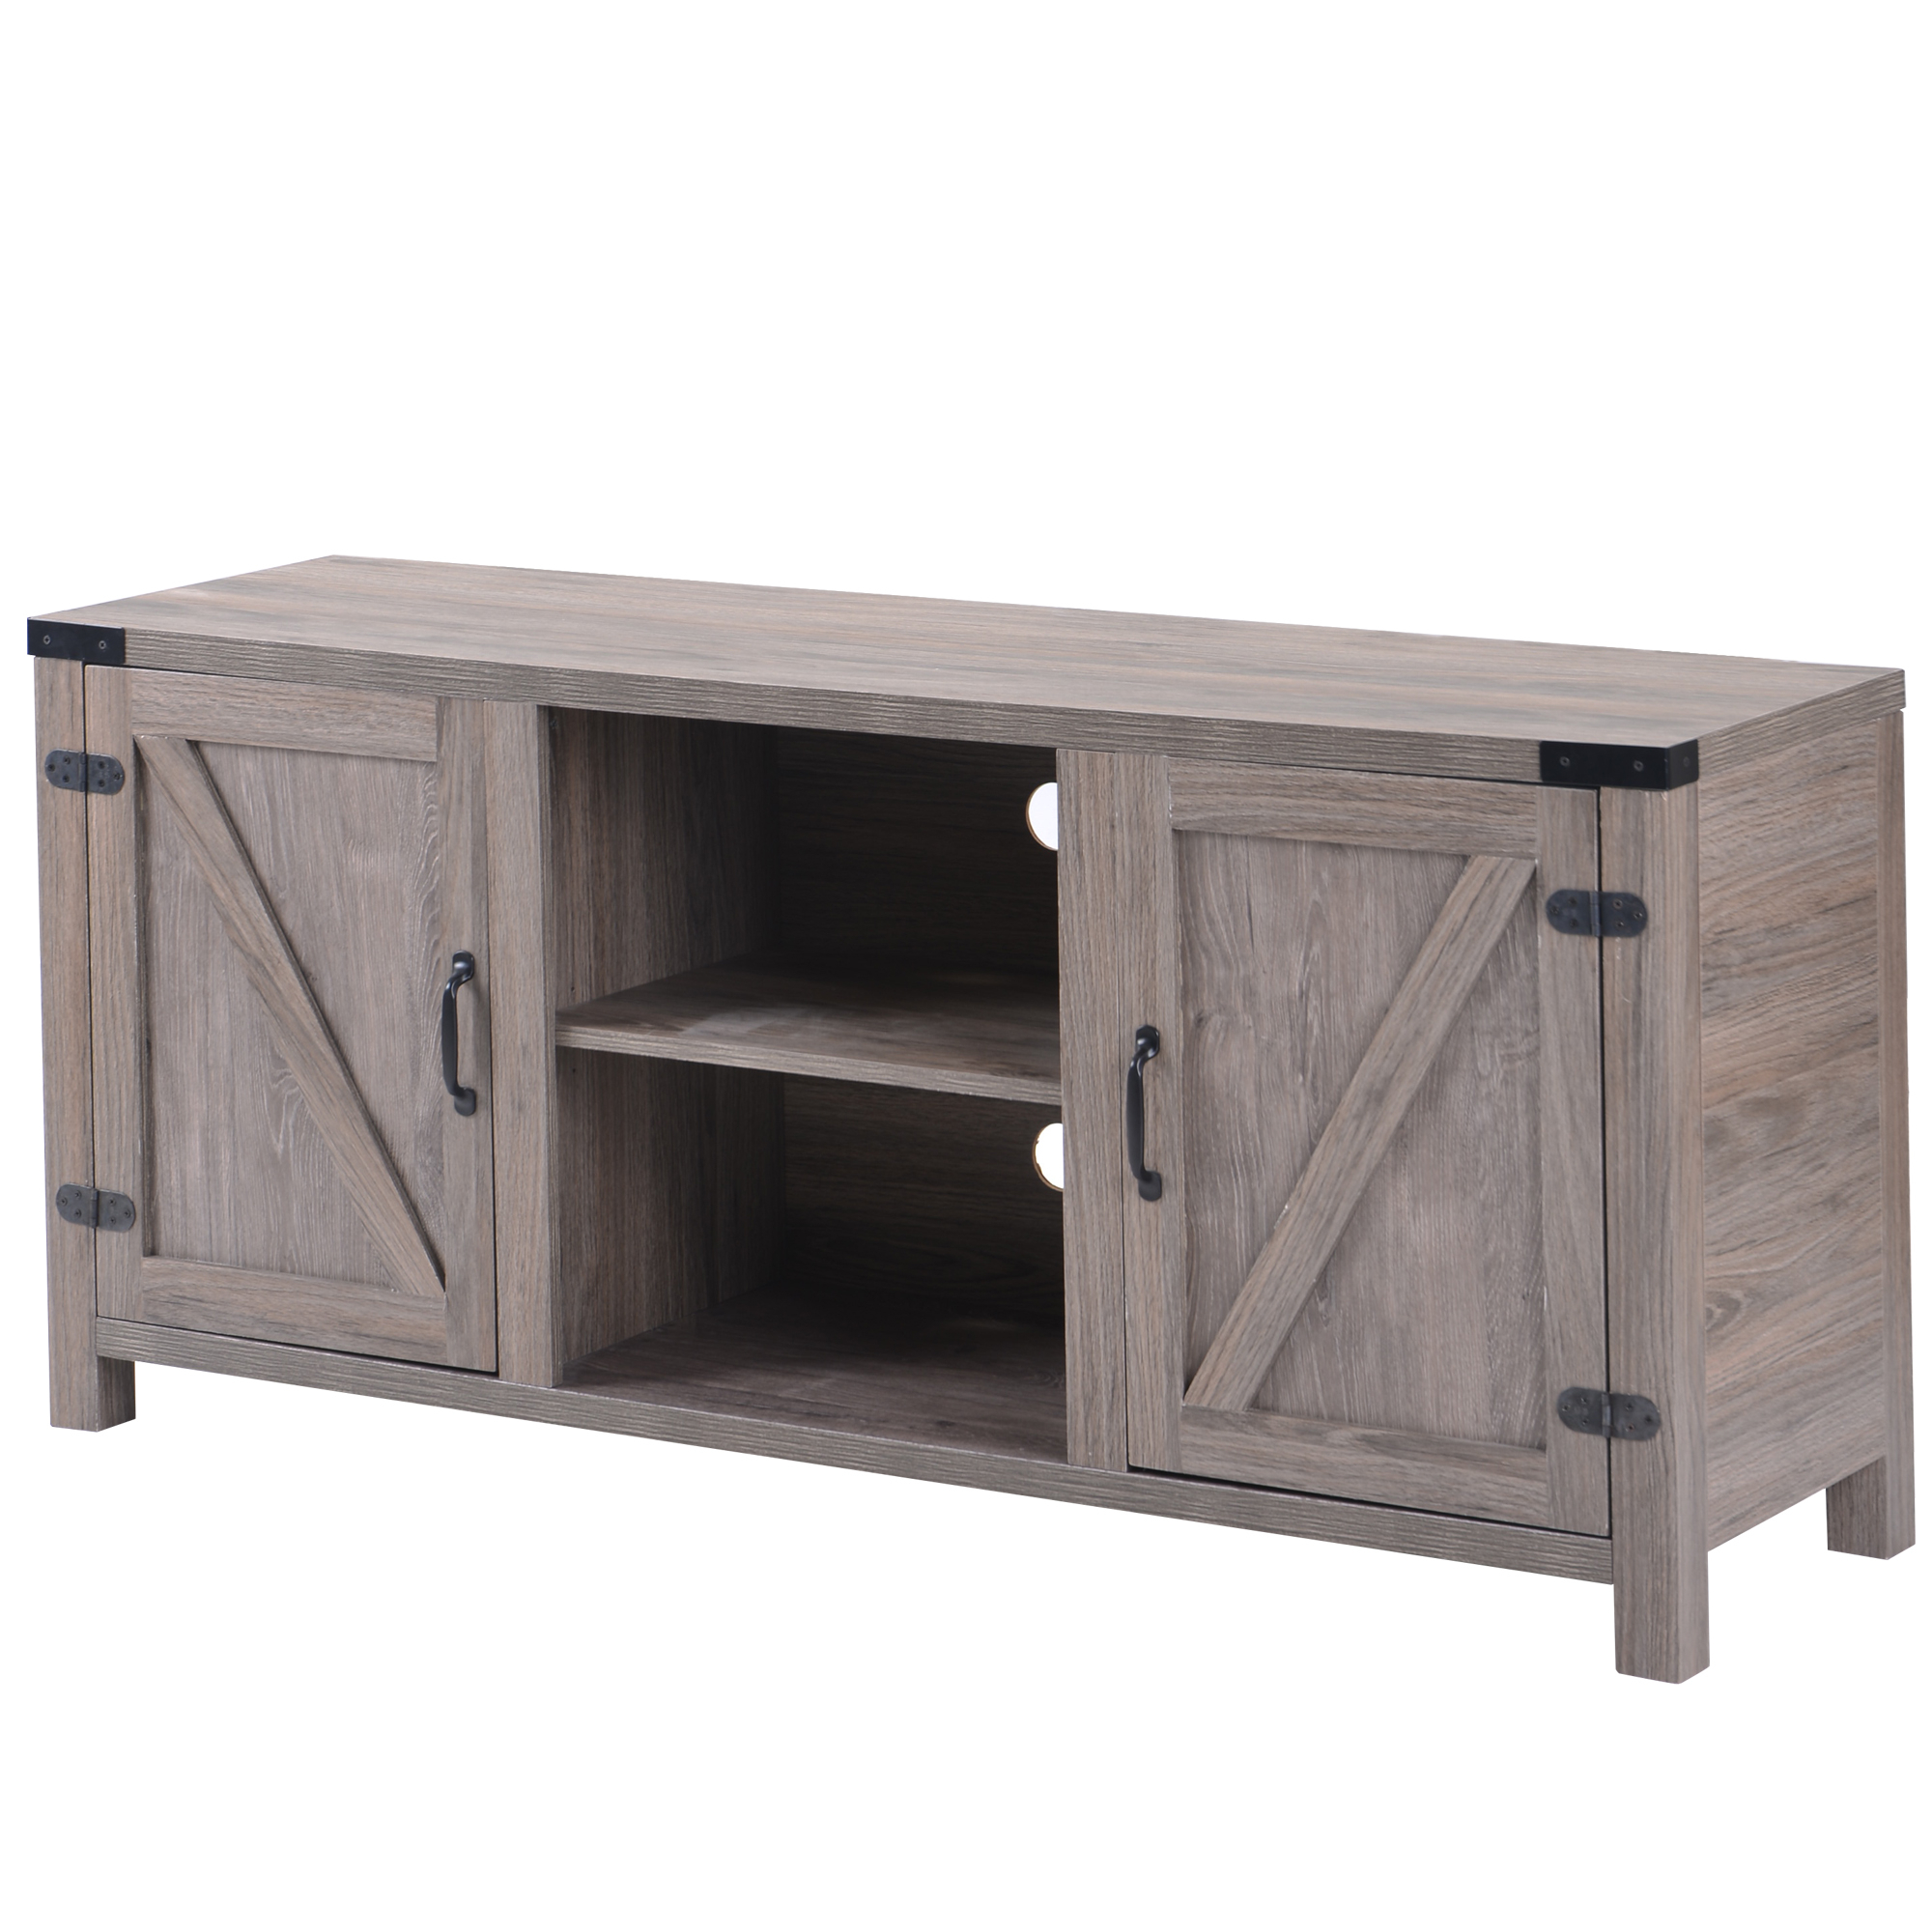 Clearance! 58'' Farmhouse Tv Stands For Tvs Up To 65 Inside Tv Stands With Cable Management (View 17 of 20)